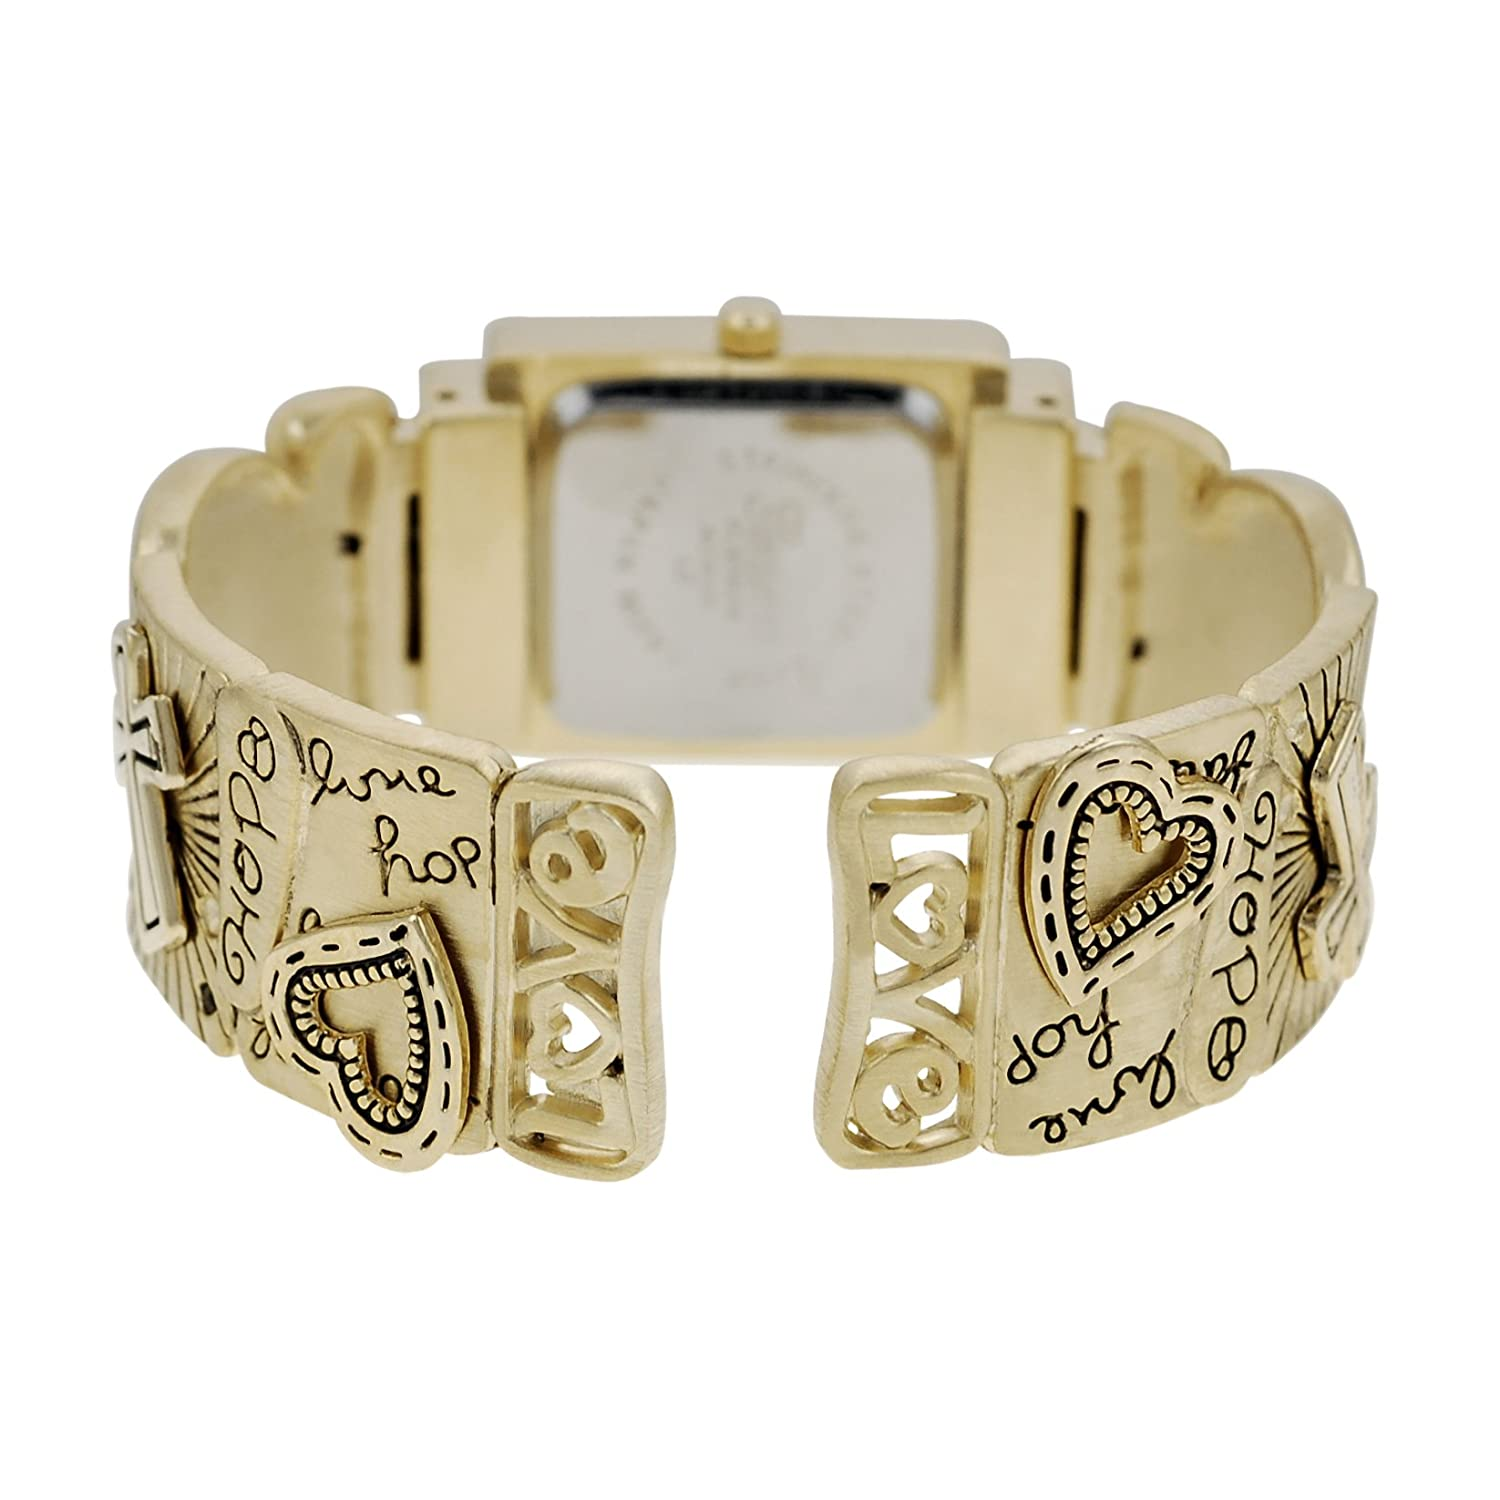 Amazon.com: Geneva Platinum Womens Faith Hope Love Cuff ...